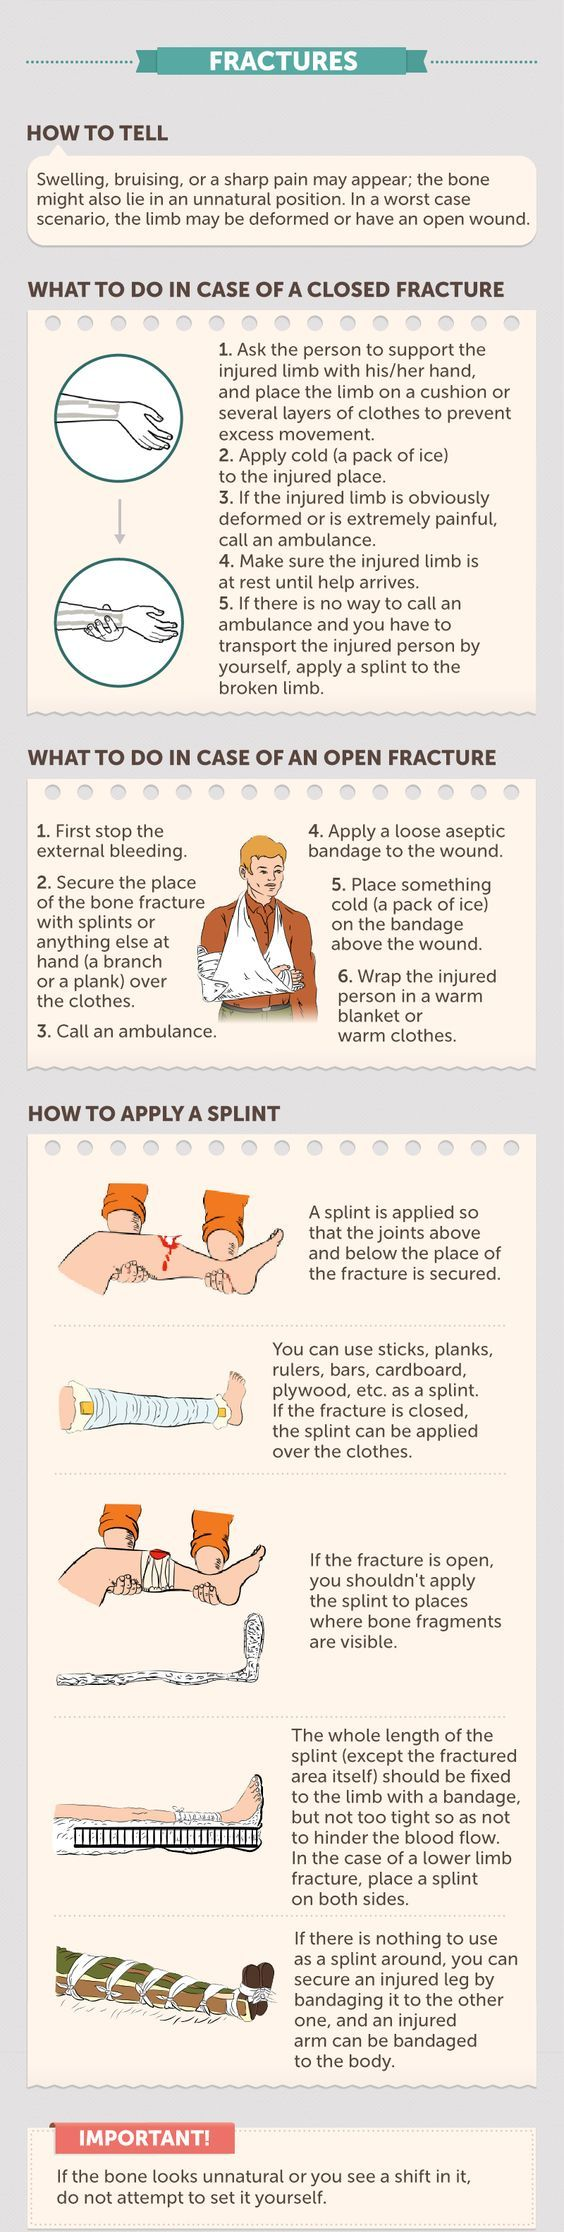 First Aid for Fractures. This chart will show you what to do in case of a closed or open fracture and also how to apply a splint.   In case of any fracture, you can use a SAM Splint, a first aid item that makes a temporary cast for injuries to ensure that the broken bones don't move the wrong way and exacerbate the problem. If you want to learn more, read this full article: http://insidefirstaid.com/personal/first-aid-kit/splinting-bone-fractures-with-a-sam-splint #first #aid #fracture…